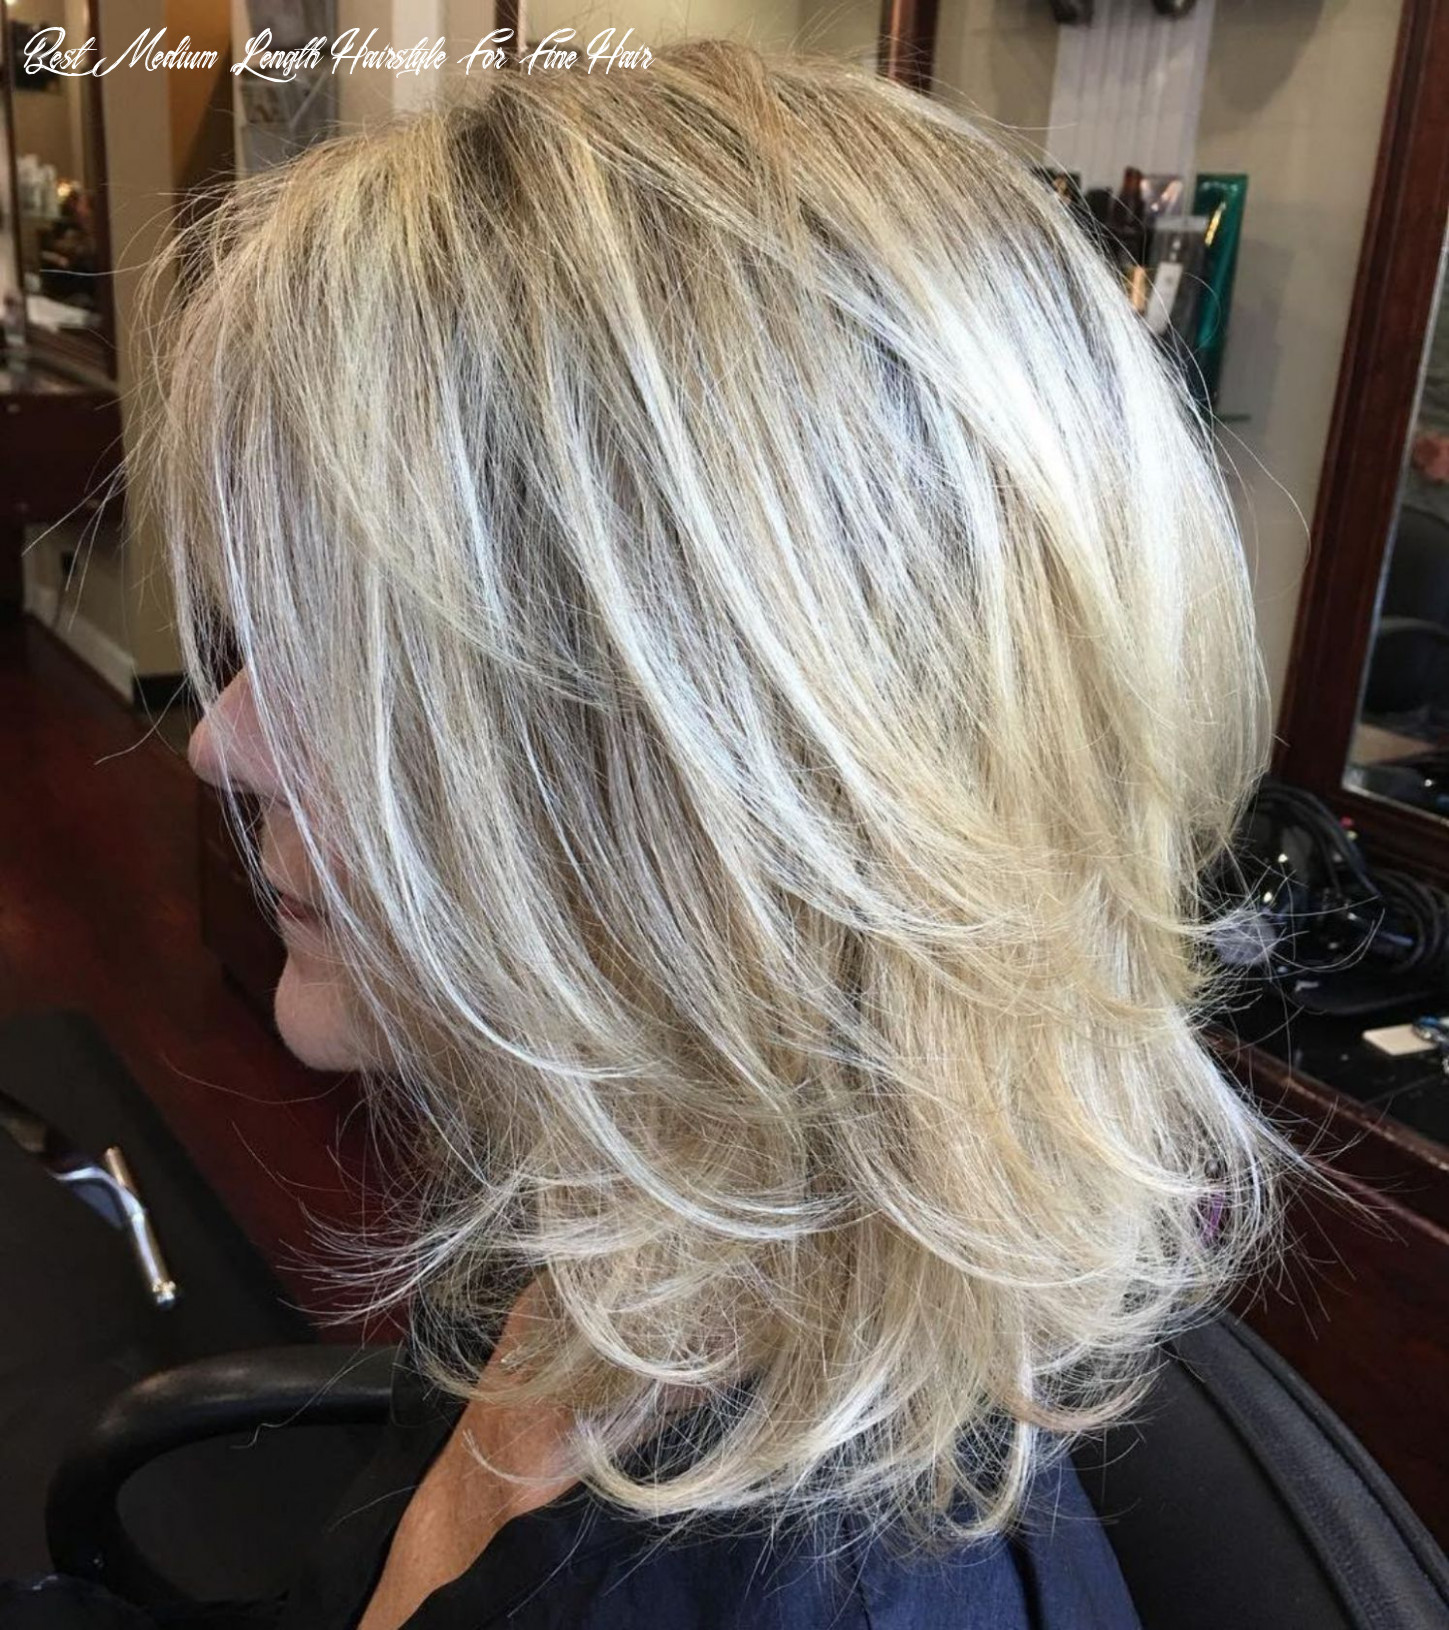 Pin on hairstyles , nails @ eyes @lips best medium length hairstyle for fine hair